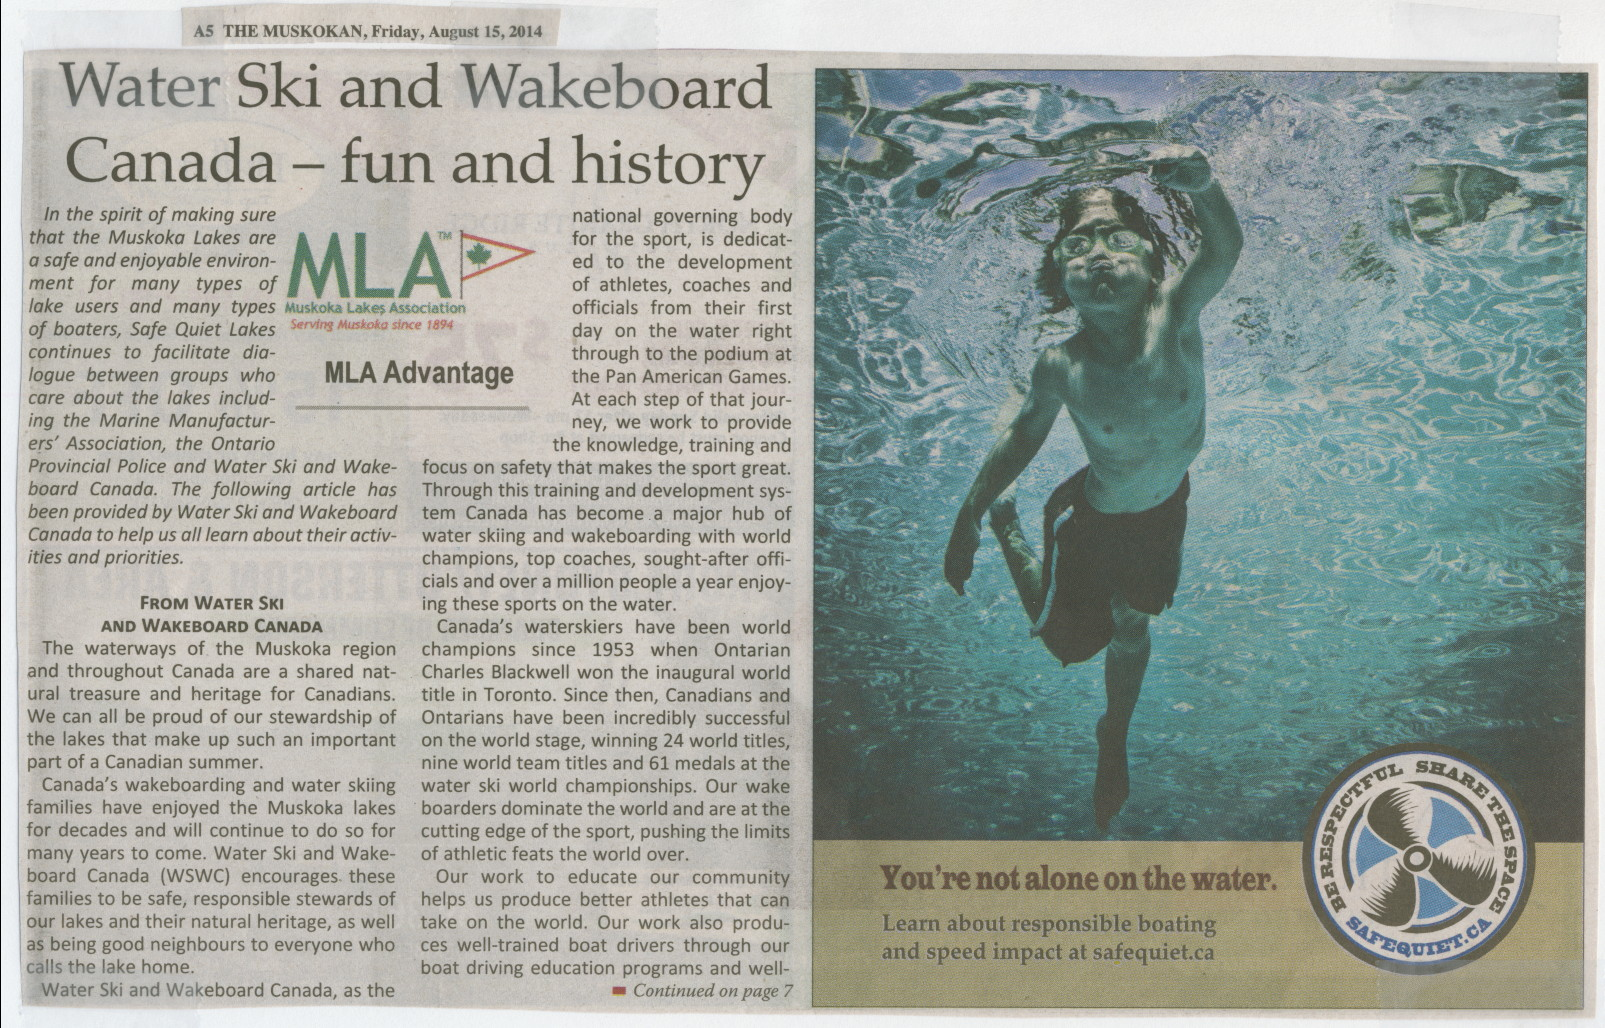 2014 - Aug 5 - Water Ski and Wakeboard Canada - fun and history - The Muskoka page 5 & 7 - 1 of 2